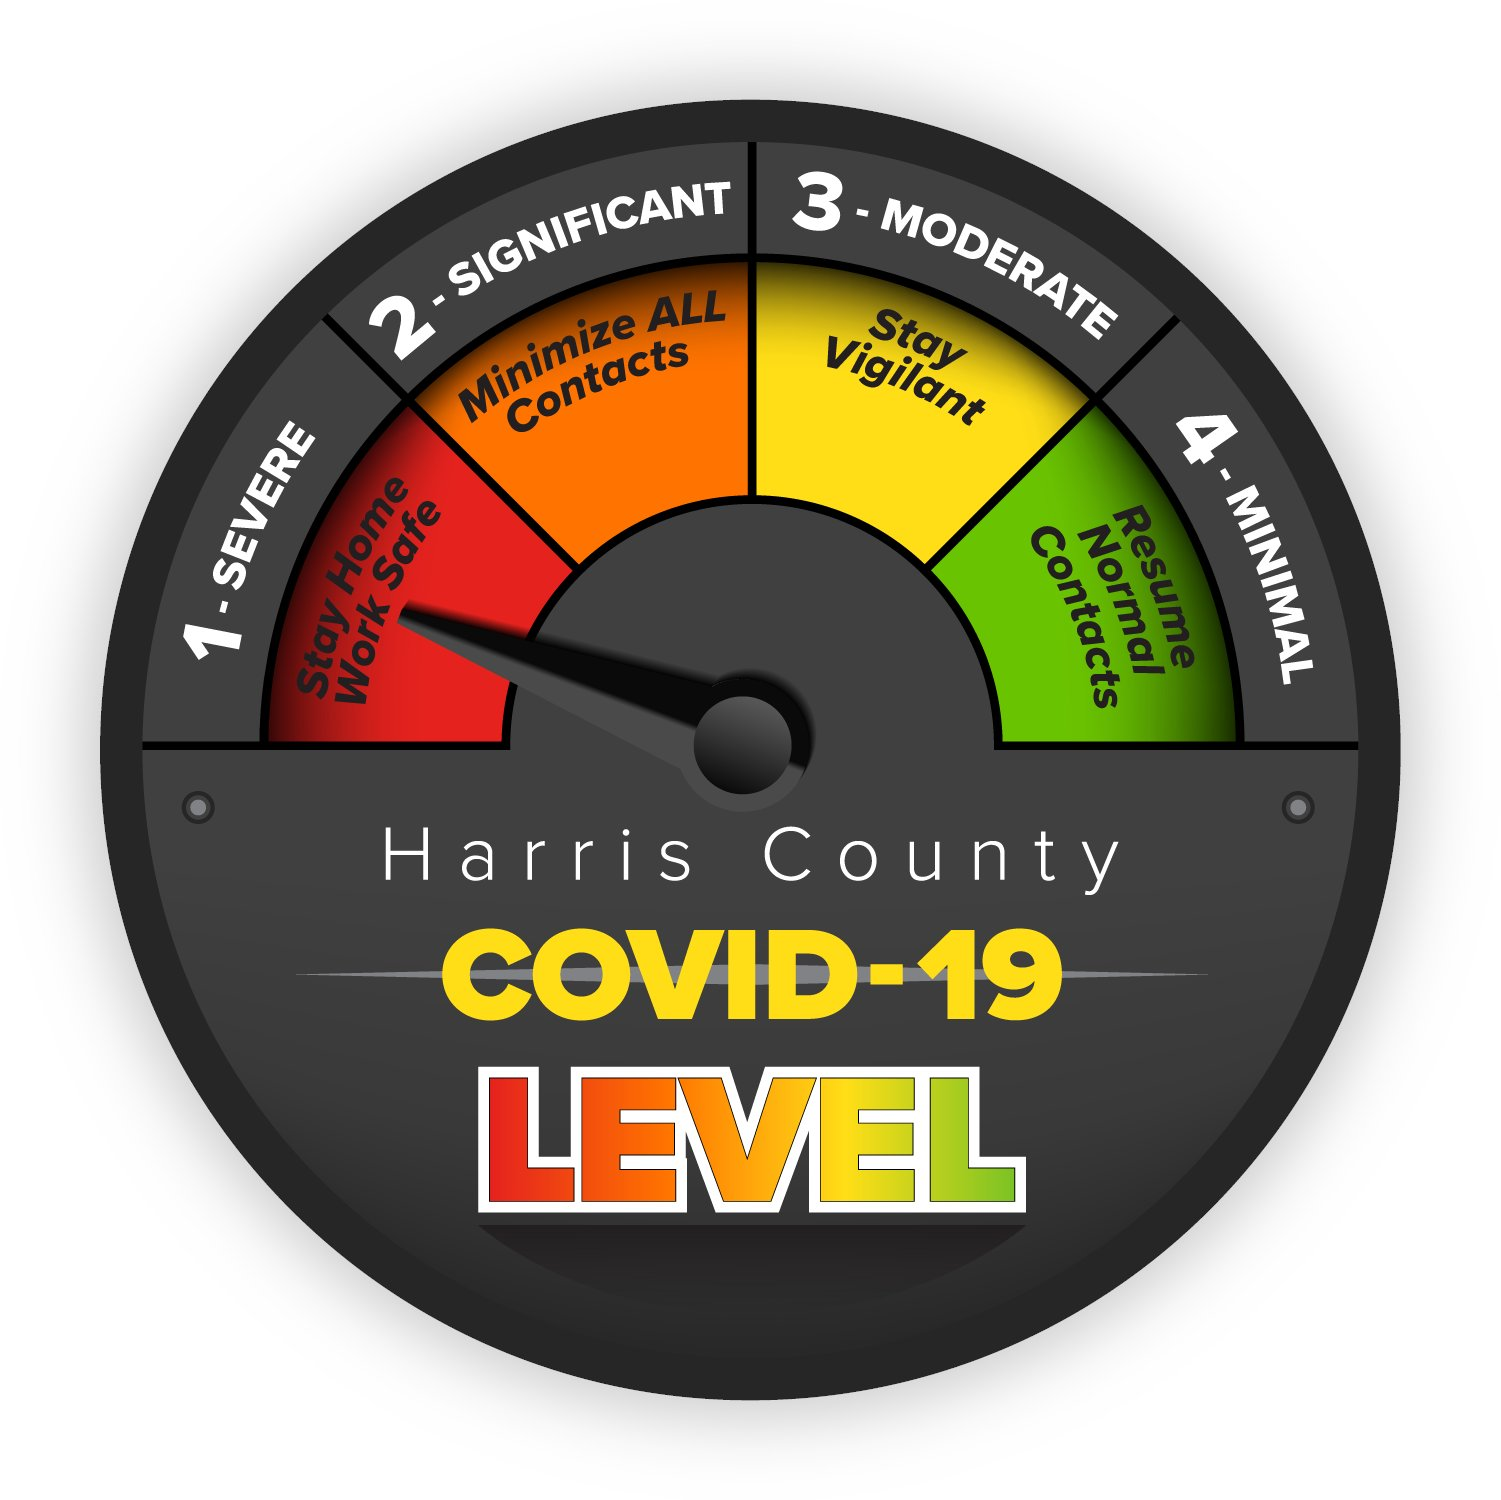 Harris County COVID Threat Level gague showing red for Severe spread.